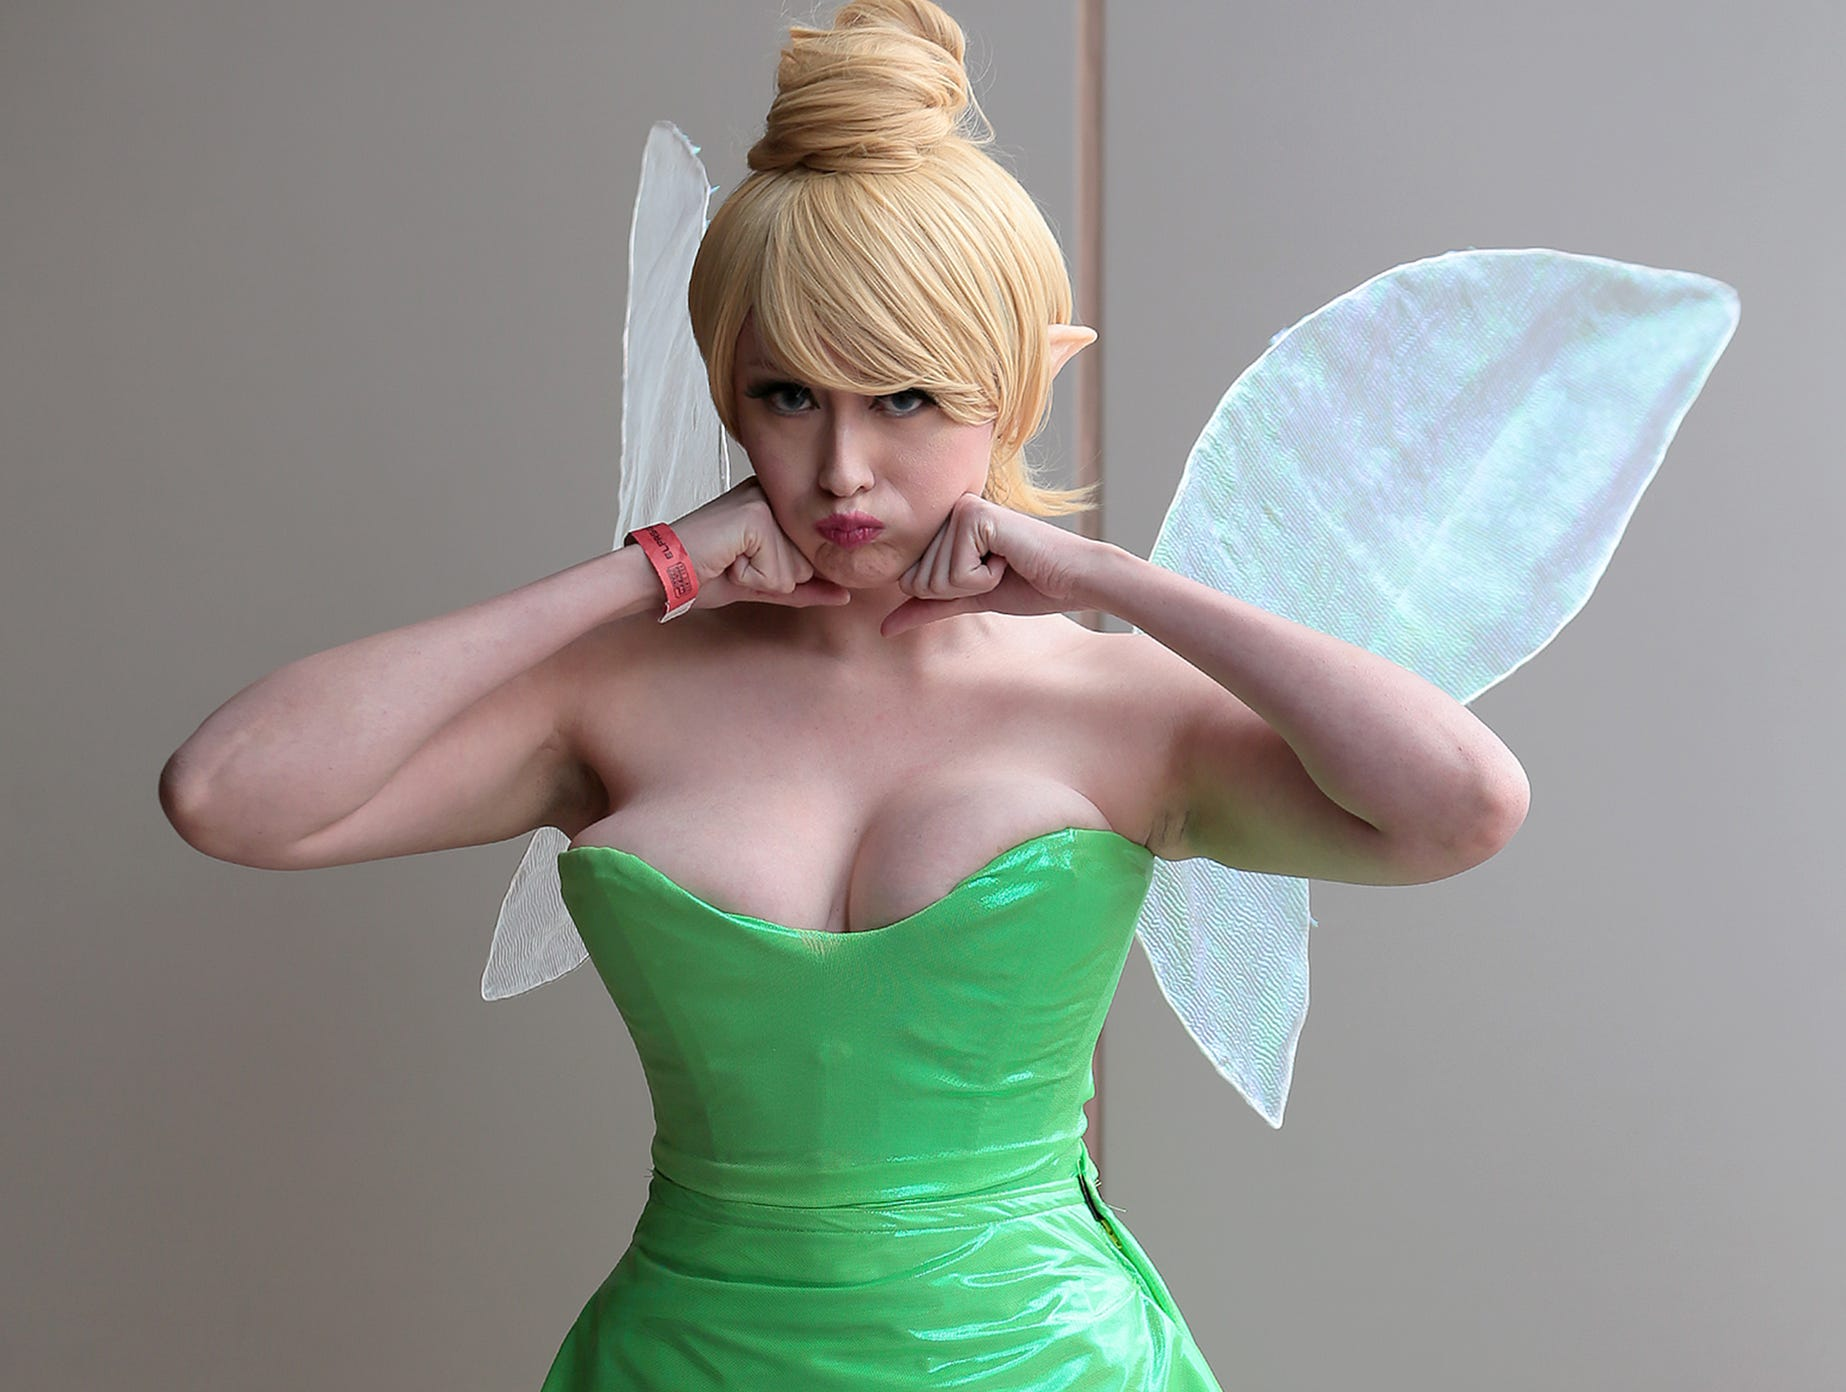 Glamerina Lune does her best pouting Tinkerbell during El Paso Comic Con on Saturday, April 13, 2019, at the convention center.